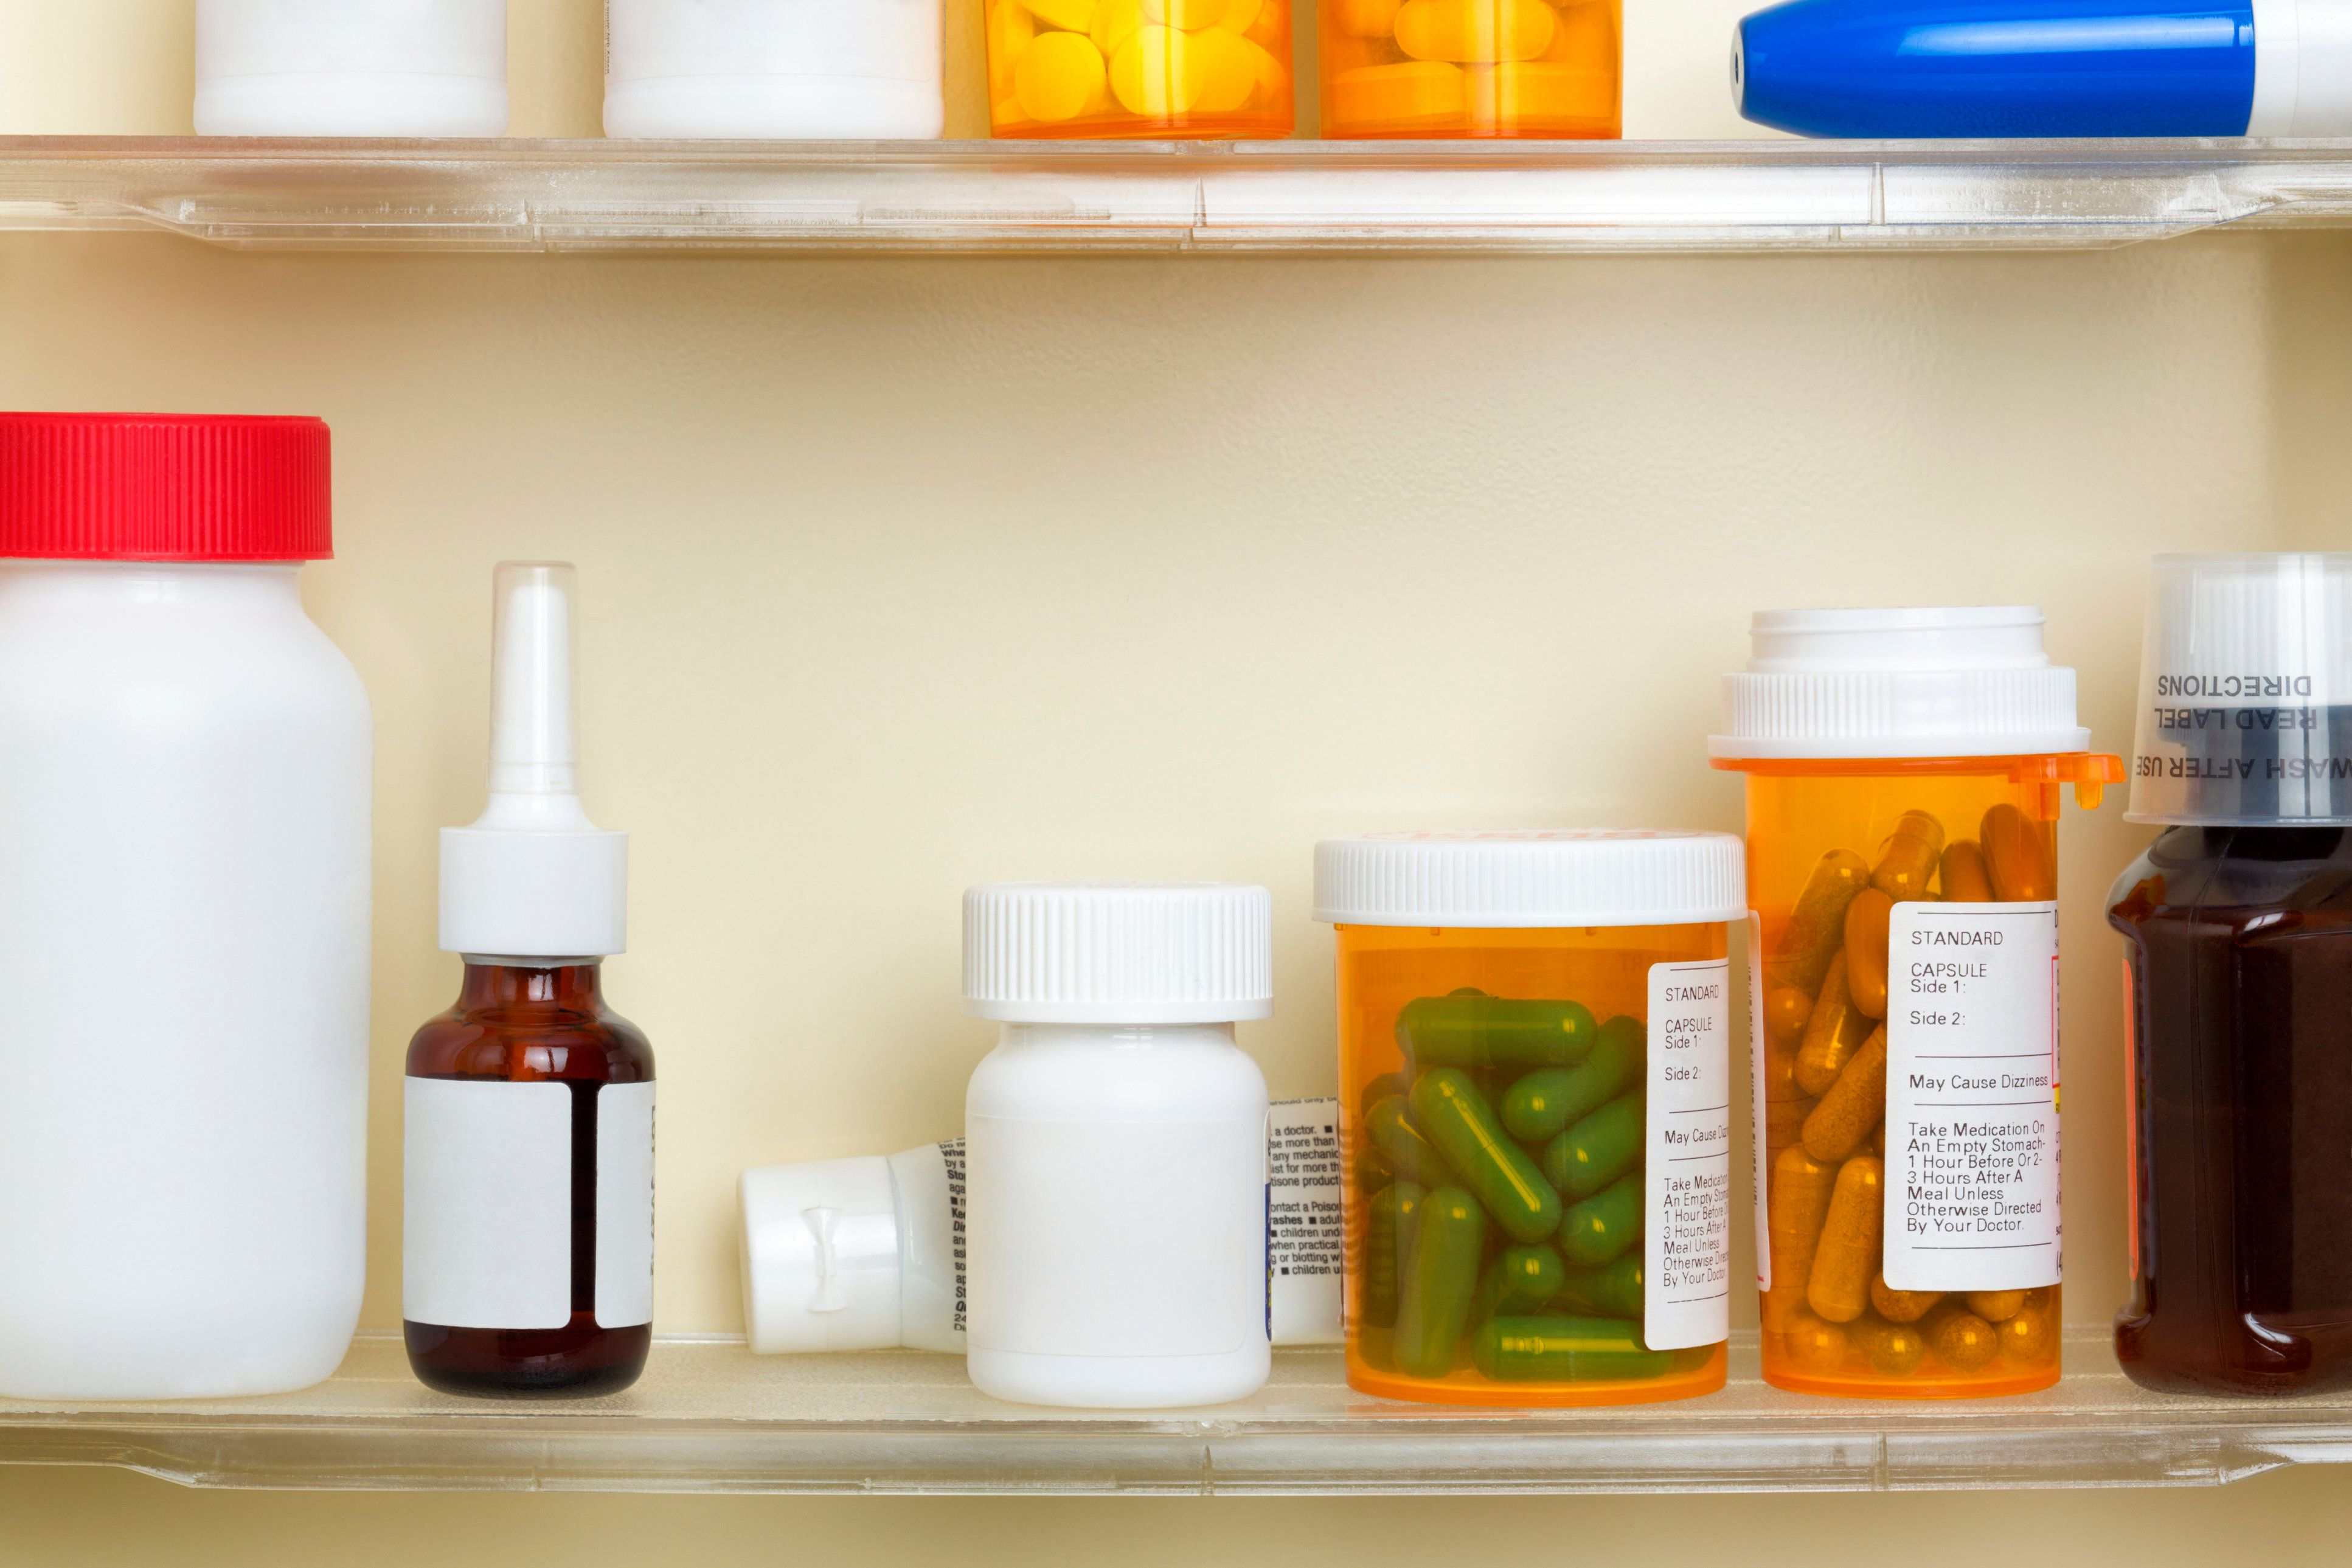 An estimated 37.2 percent of U.S. adults are taking medications that list depression as a side effect, according to a study p